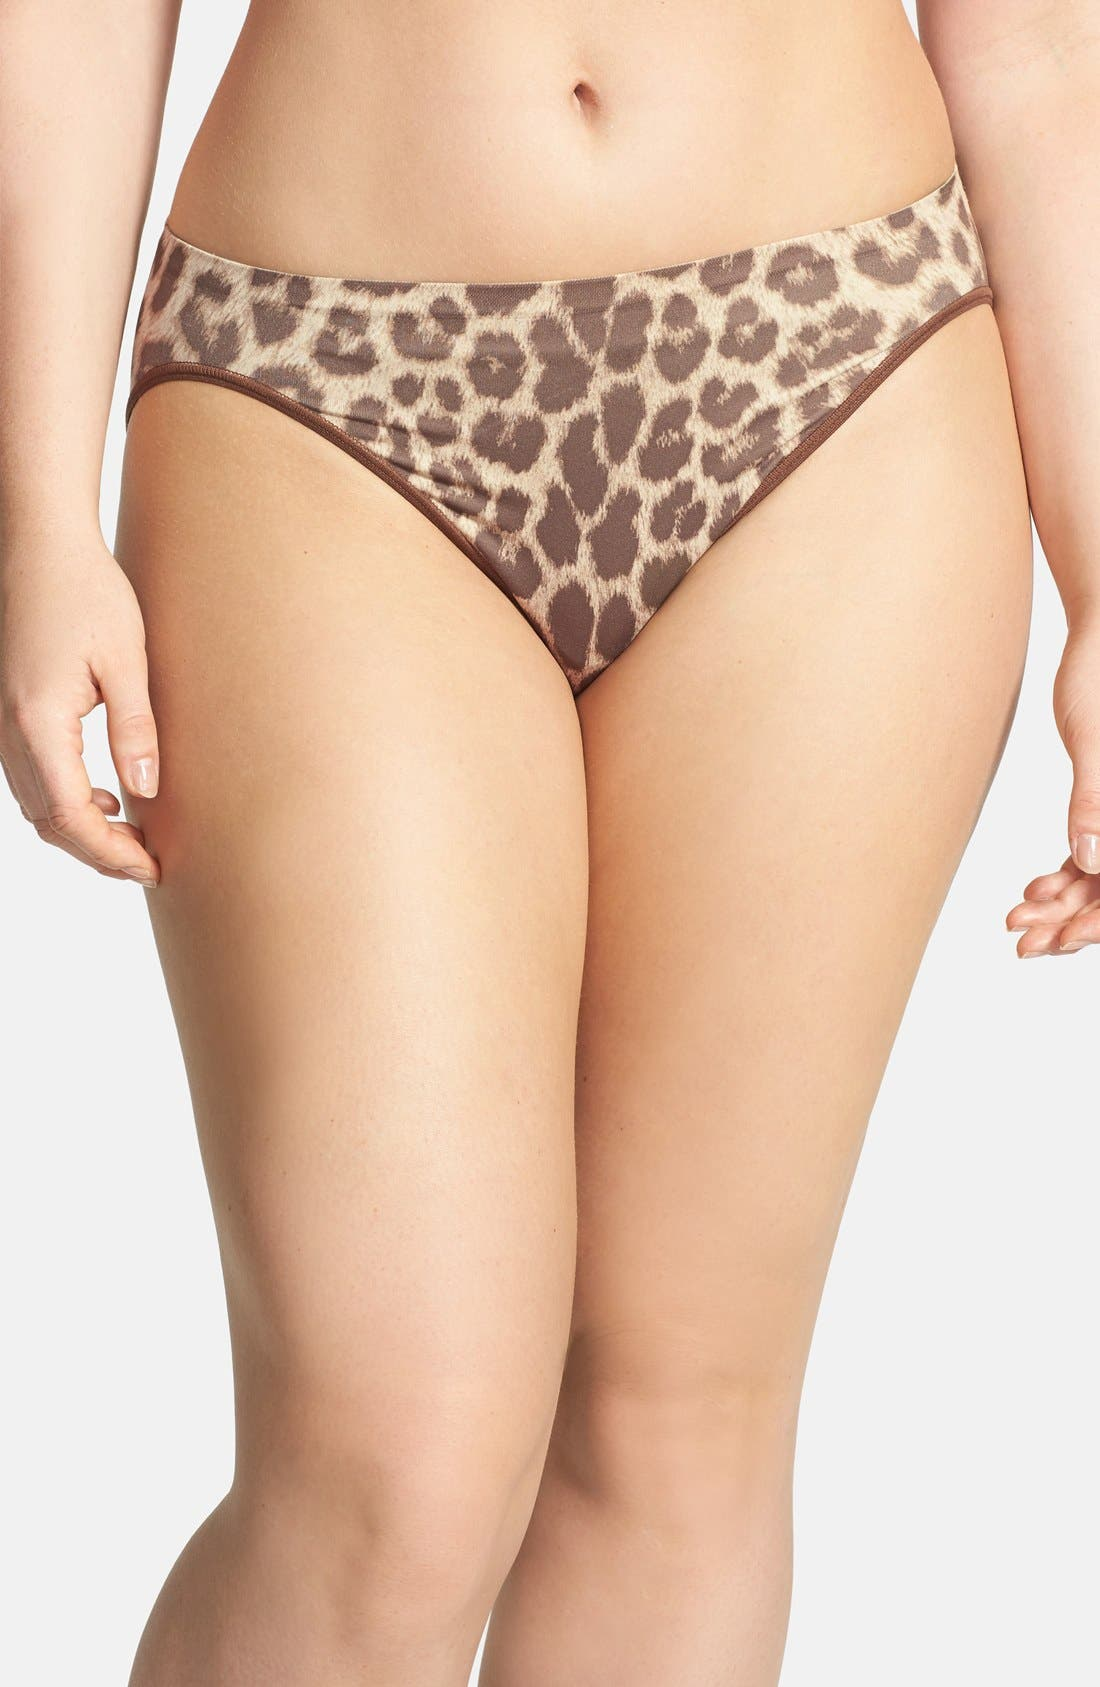 Main Image - Shimera Print Seamless High Cut Briefs (Plus Size) (3 for $30)